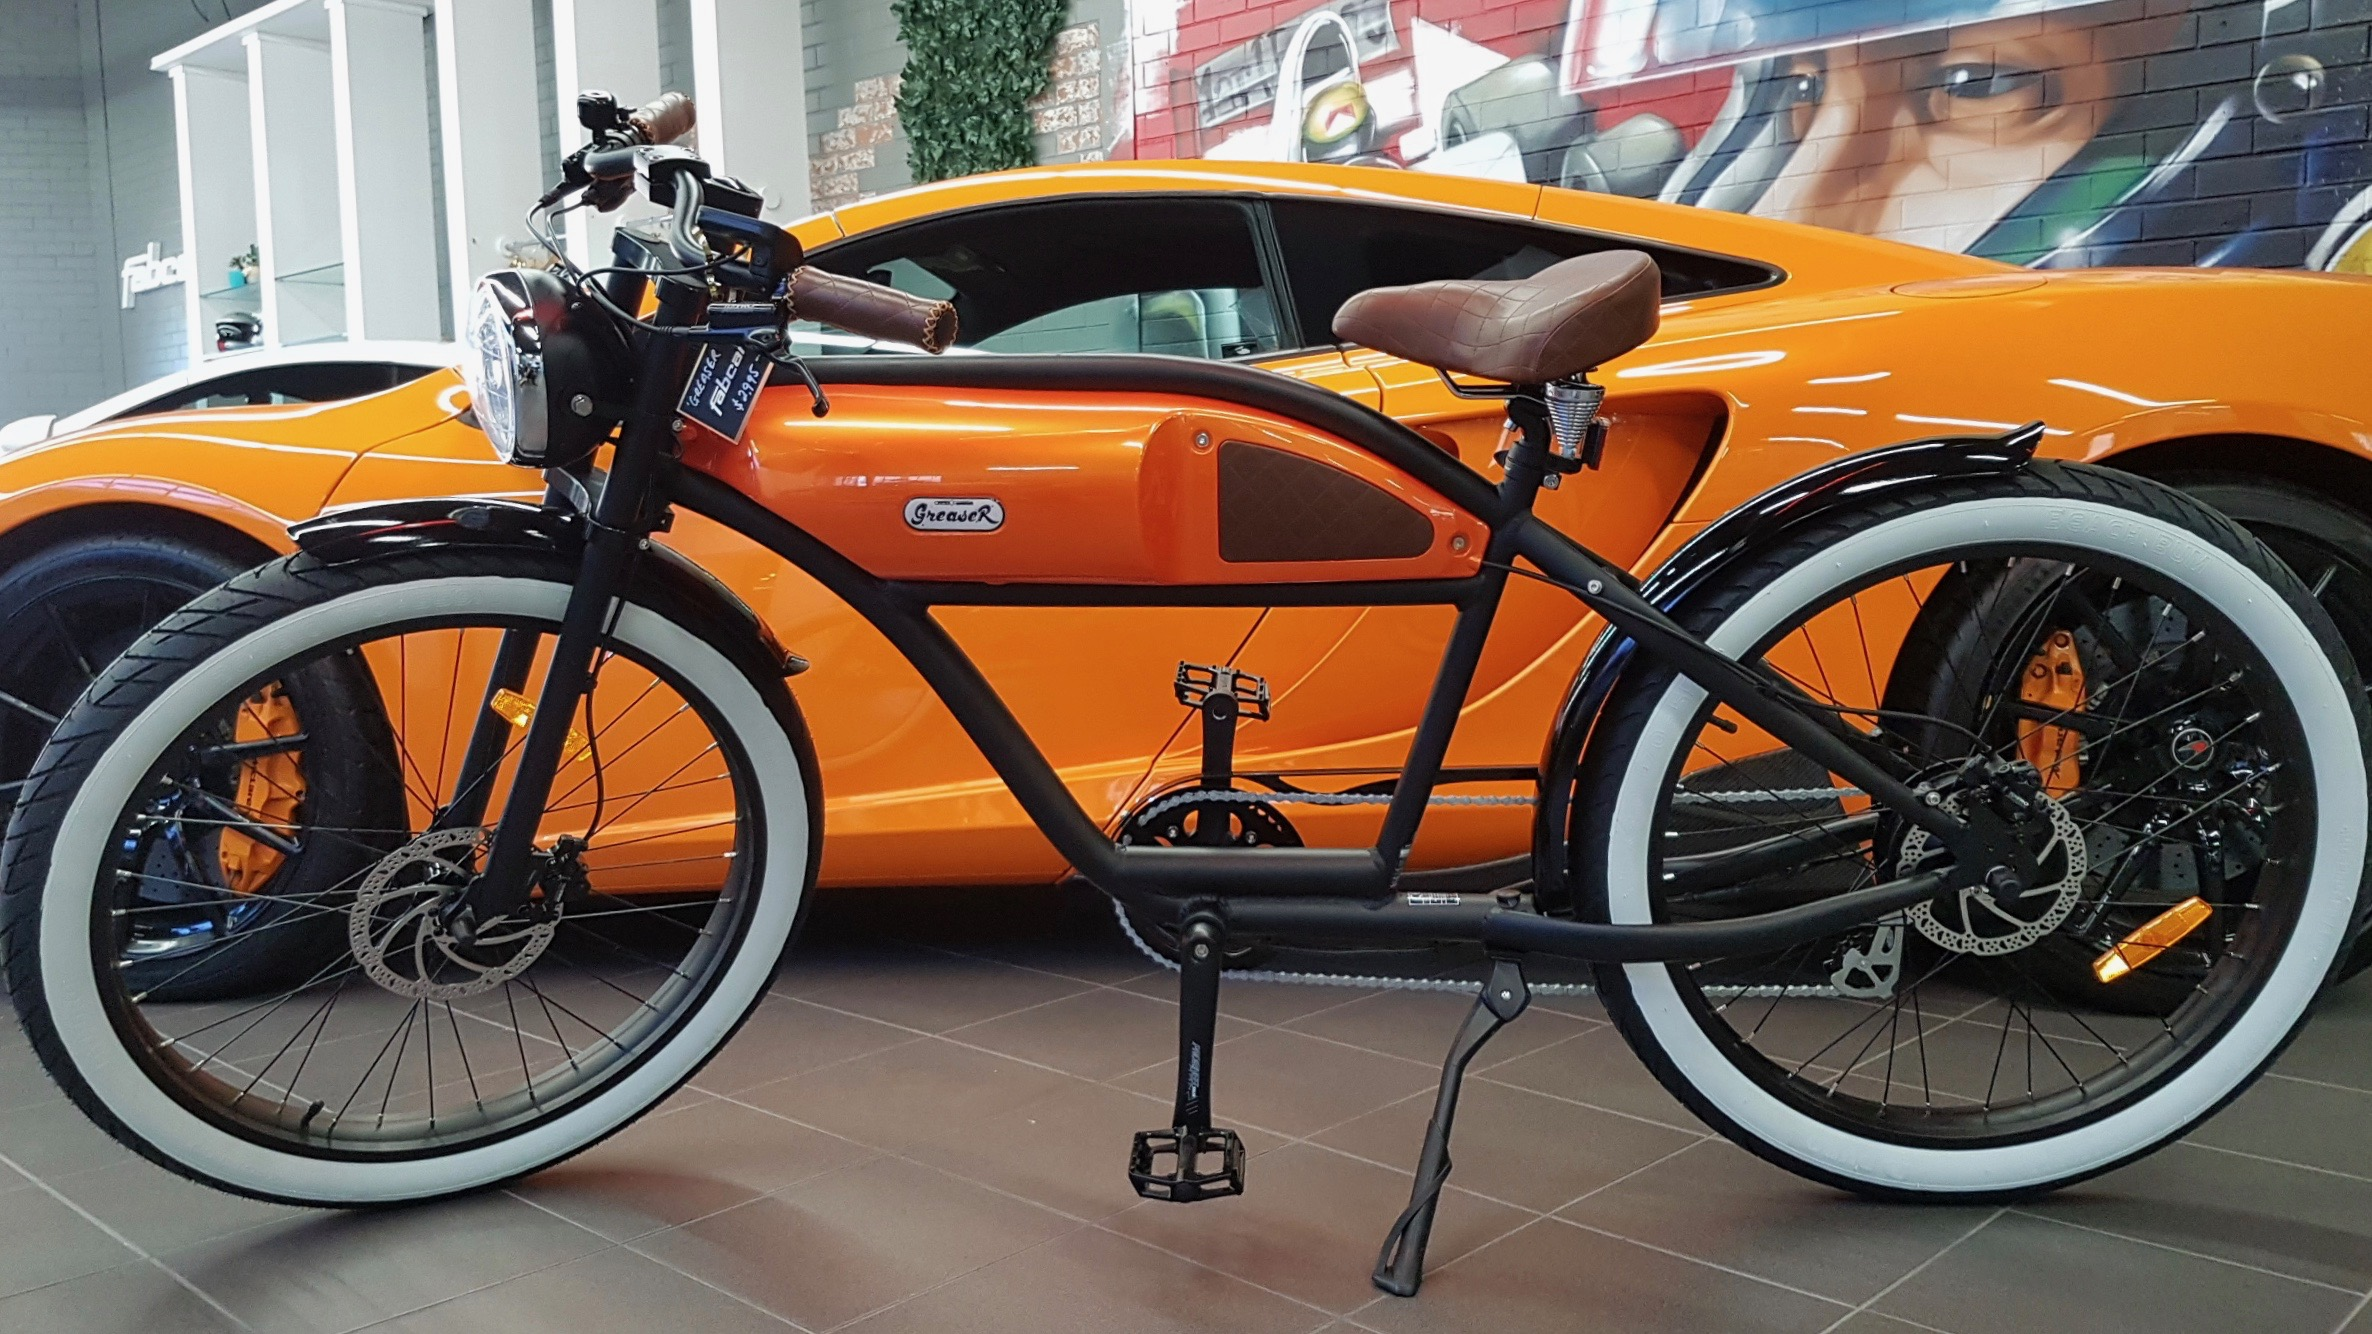 Greaser Electric Bikes